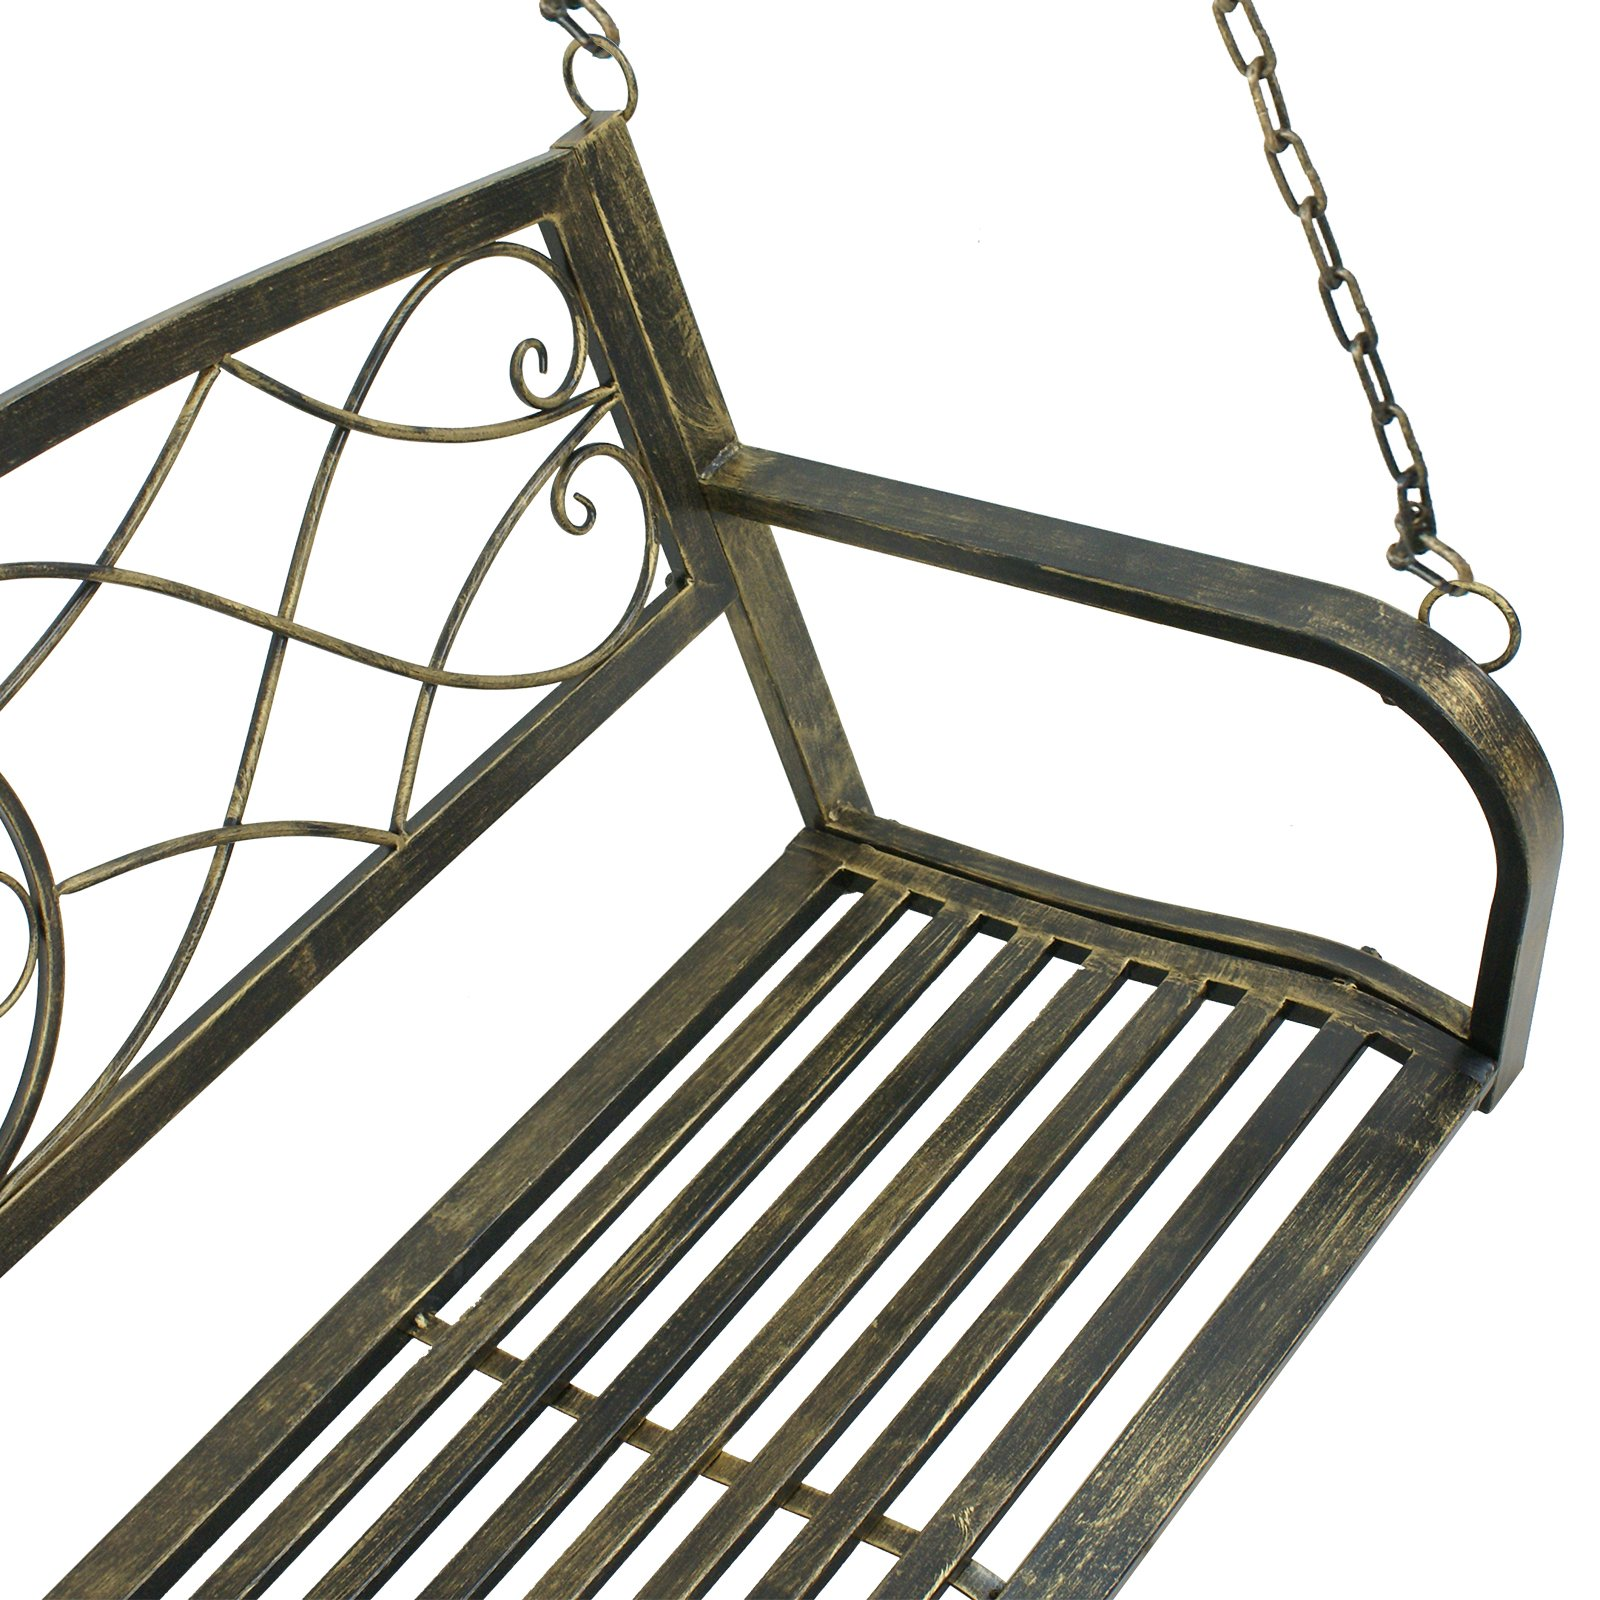 Smartxchoices Treated Metal Hanging Patio Swing Bench Porch Furniture Fleur-De-Lis Design 2 Person Heavy Duty Swing Chair 50.5''L by Smartxchoices (Image #5)